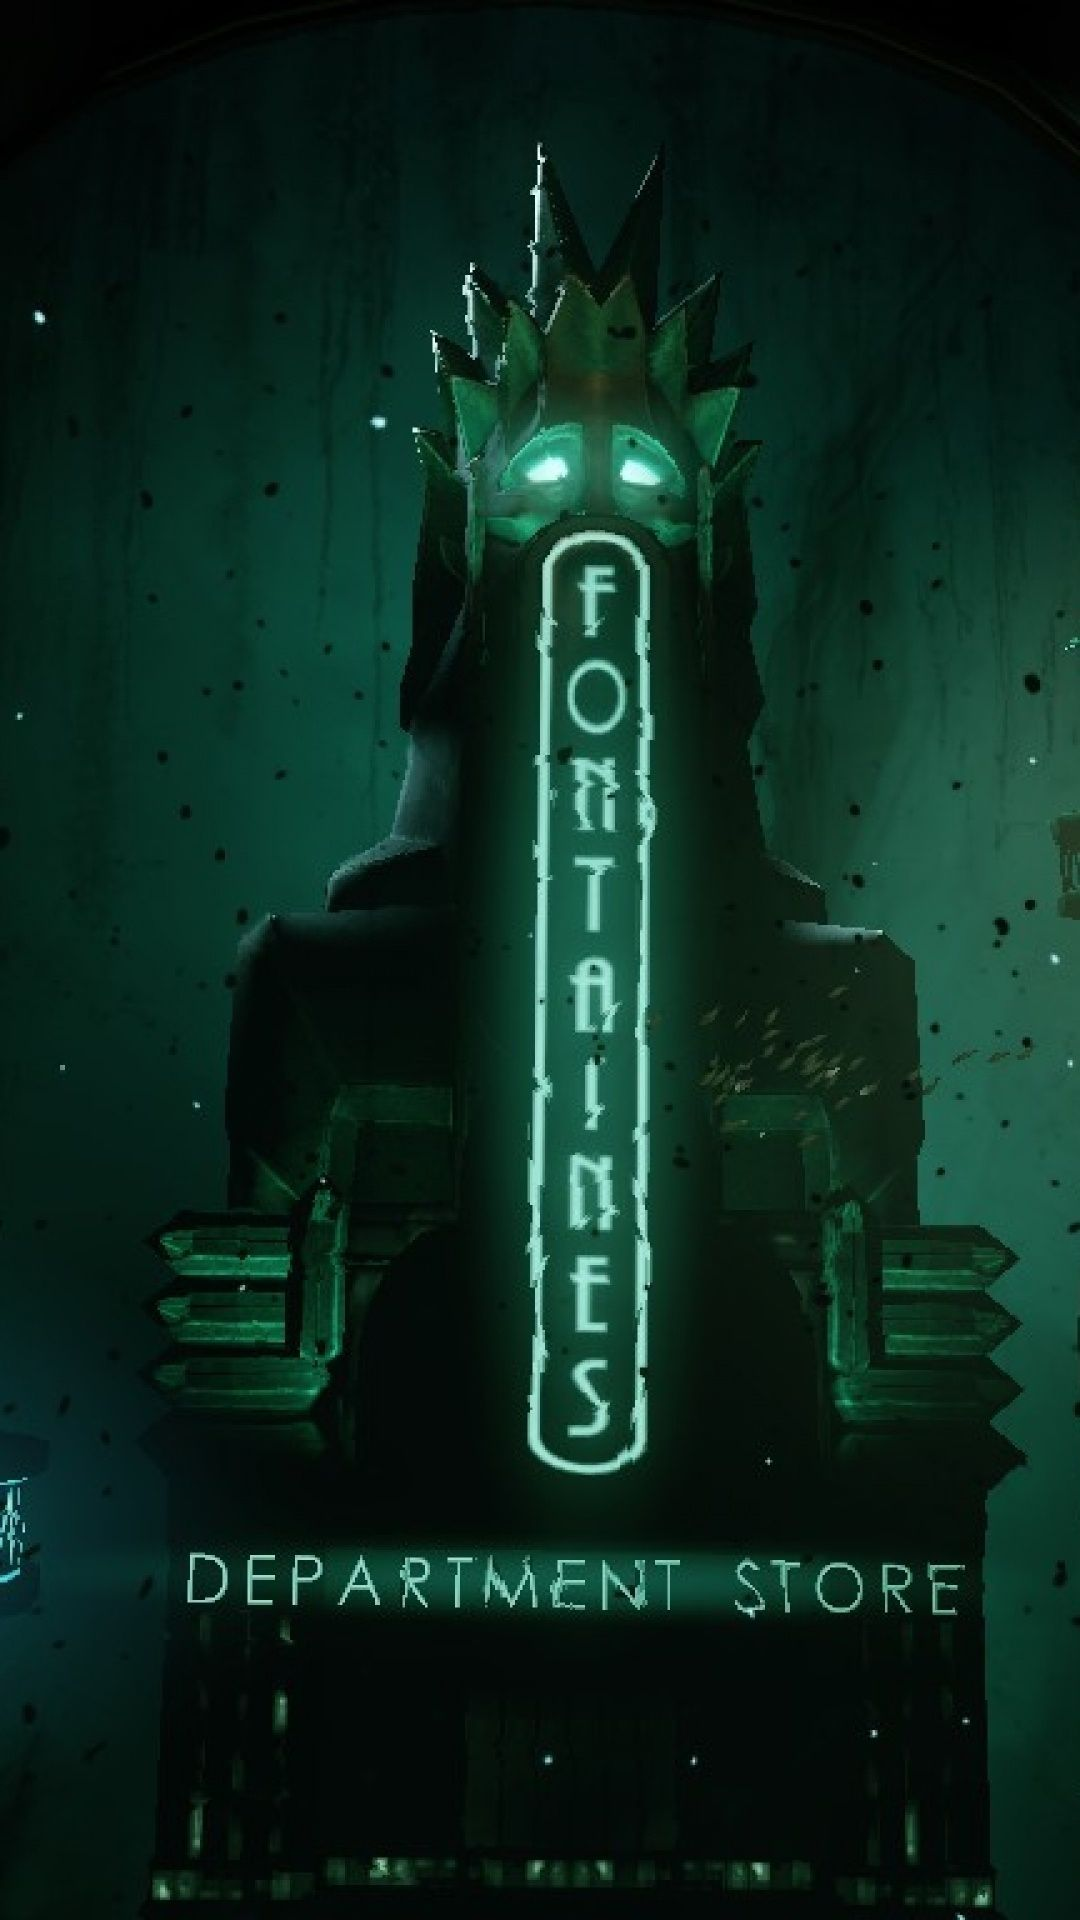 Bioshock Wallpaper Iphone 5